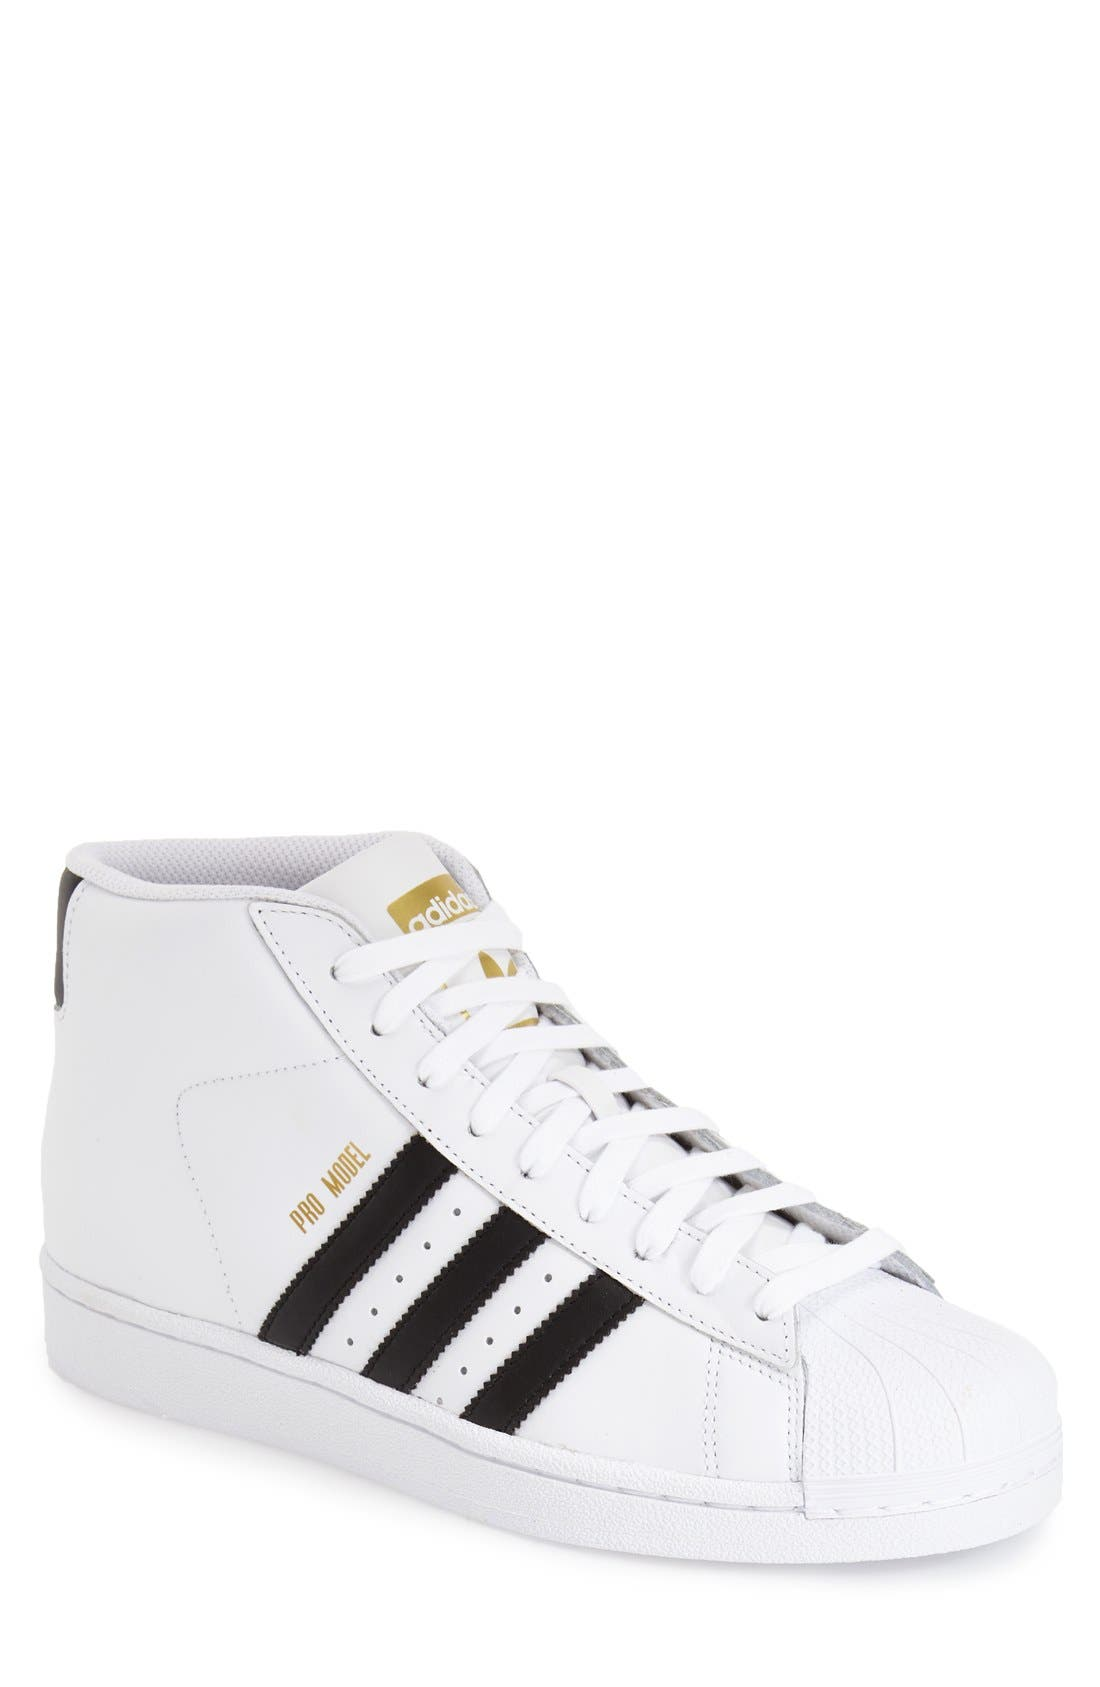 Main Image - adidas 'Pro Model' High Top Sneaker ...